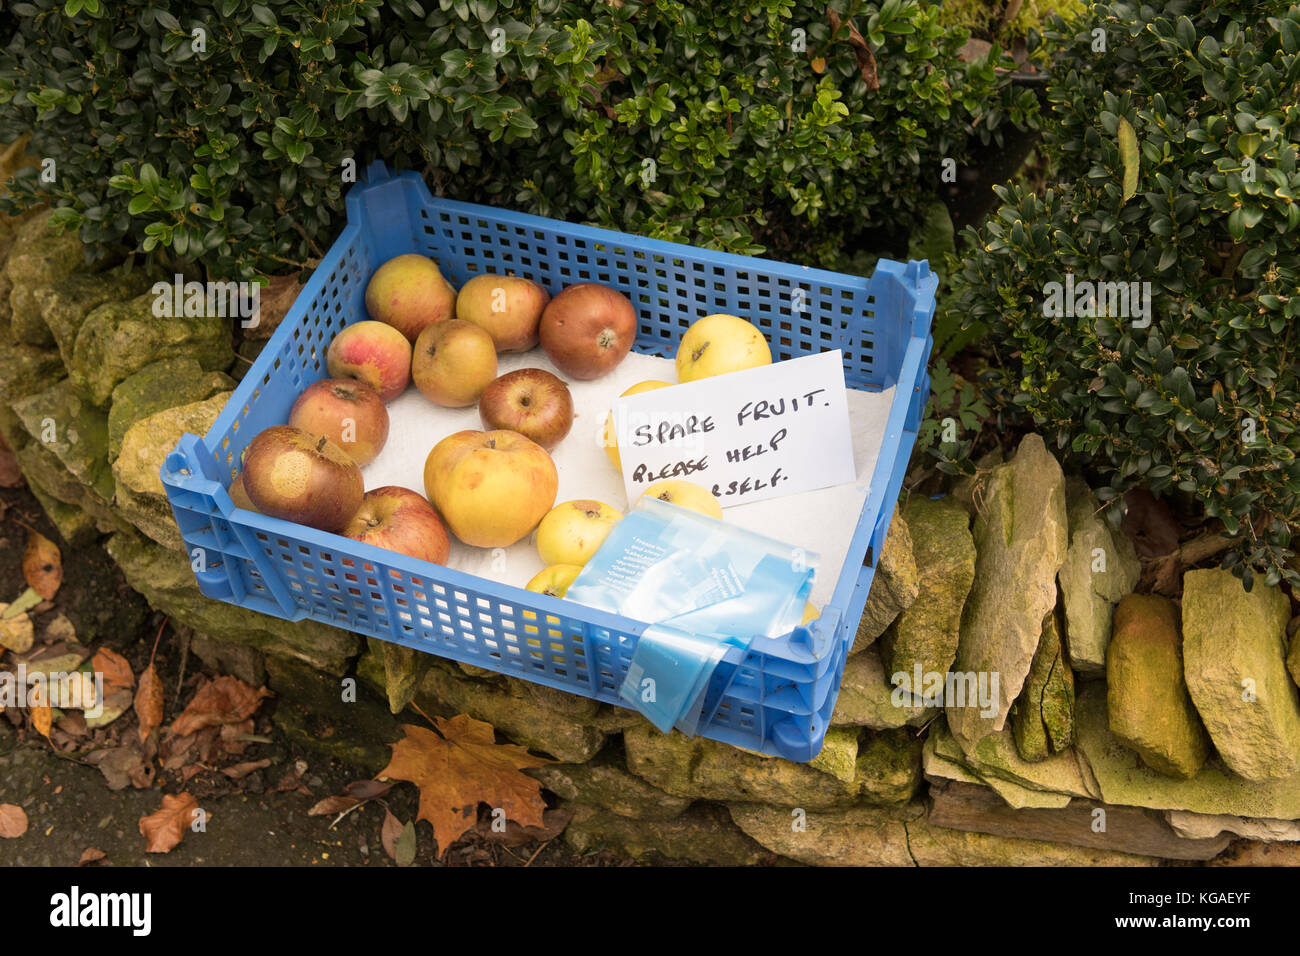 surplus apples in garden given away in Bourton on the Water, Gloucestershire, England, UK - Stock Image